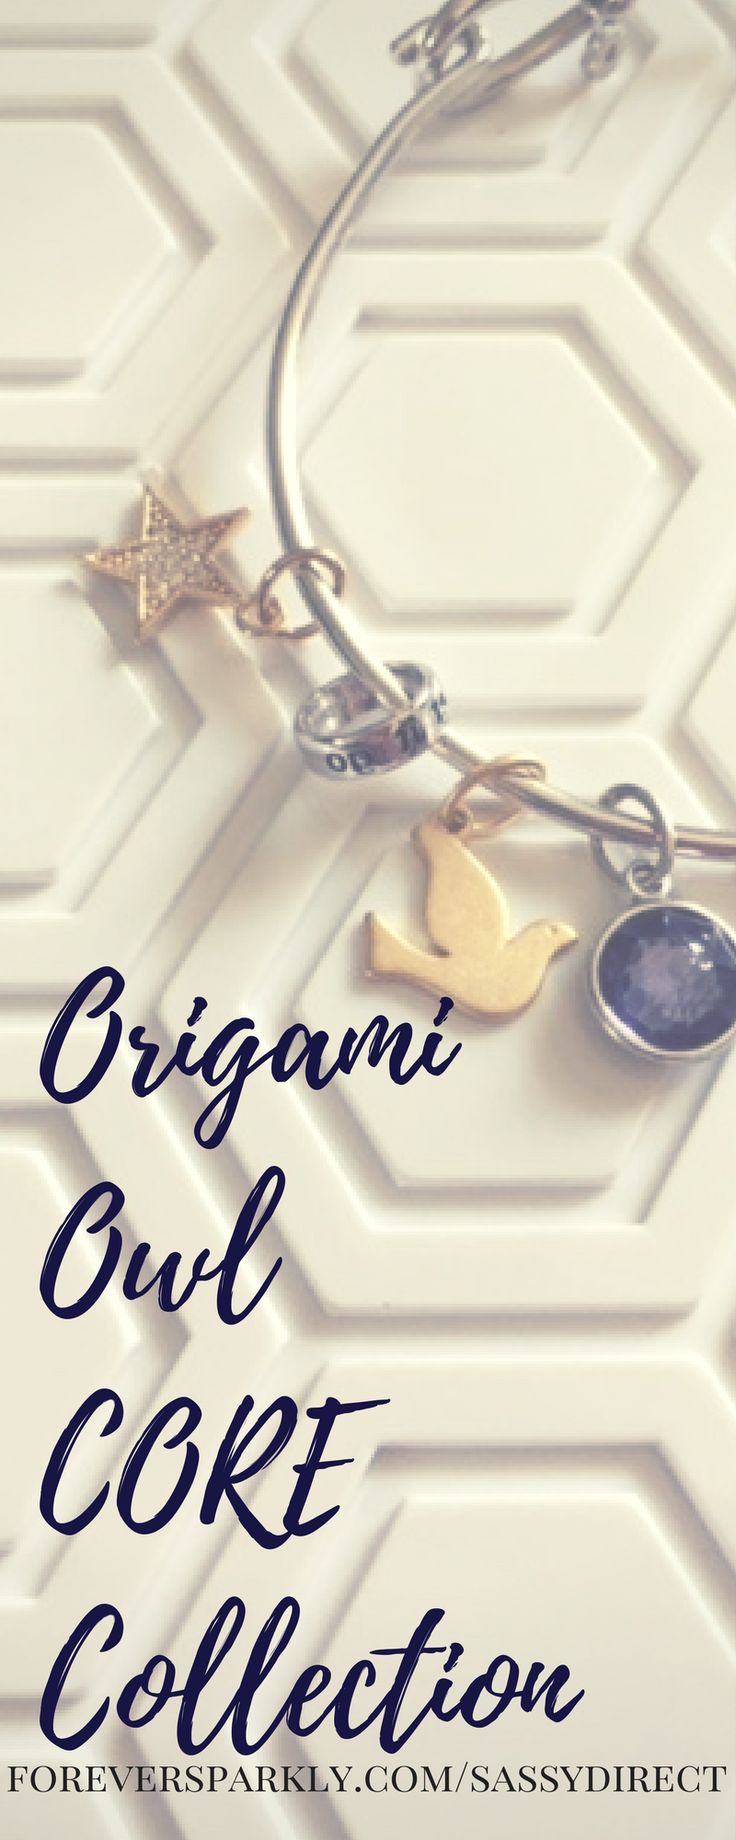 Discover the Origami Owl CORE Collection. Perfect for direct sales team gifts. Origami Owl Core Collection is budget friendly and simply elegant. Email kristy@foreversparkly.com for a free gift!